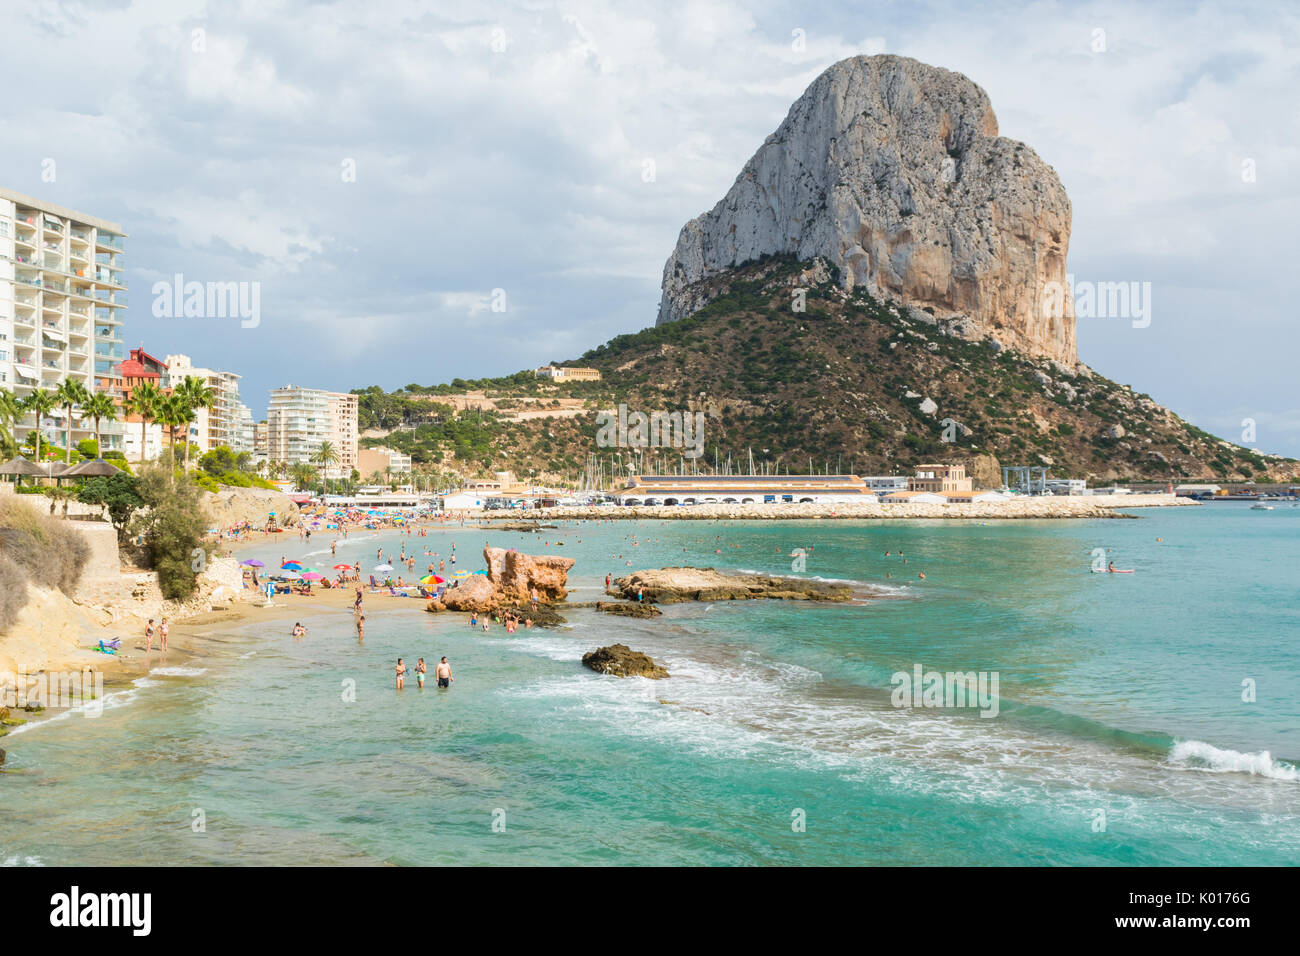 Costa Blanca Costa Blanca Beach Stock Photos And Costa Blanca Beach Stock